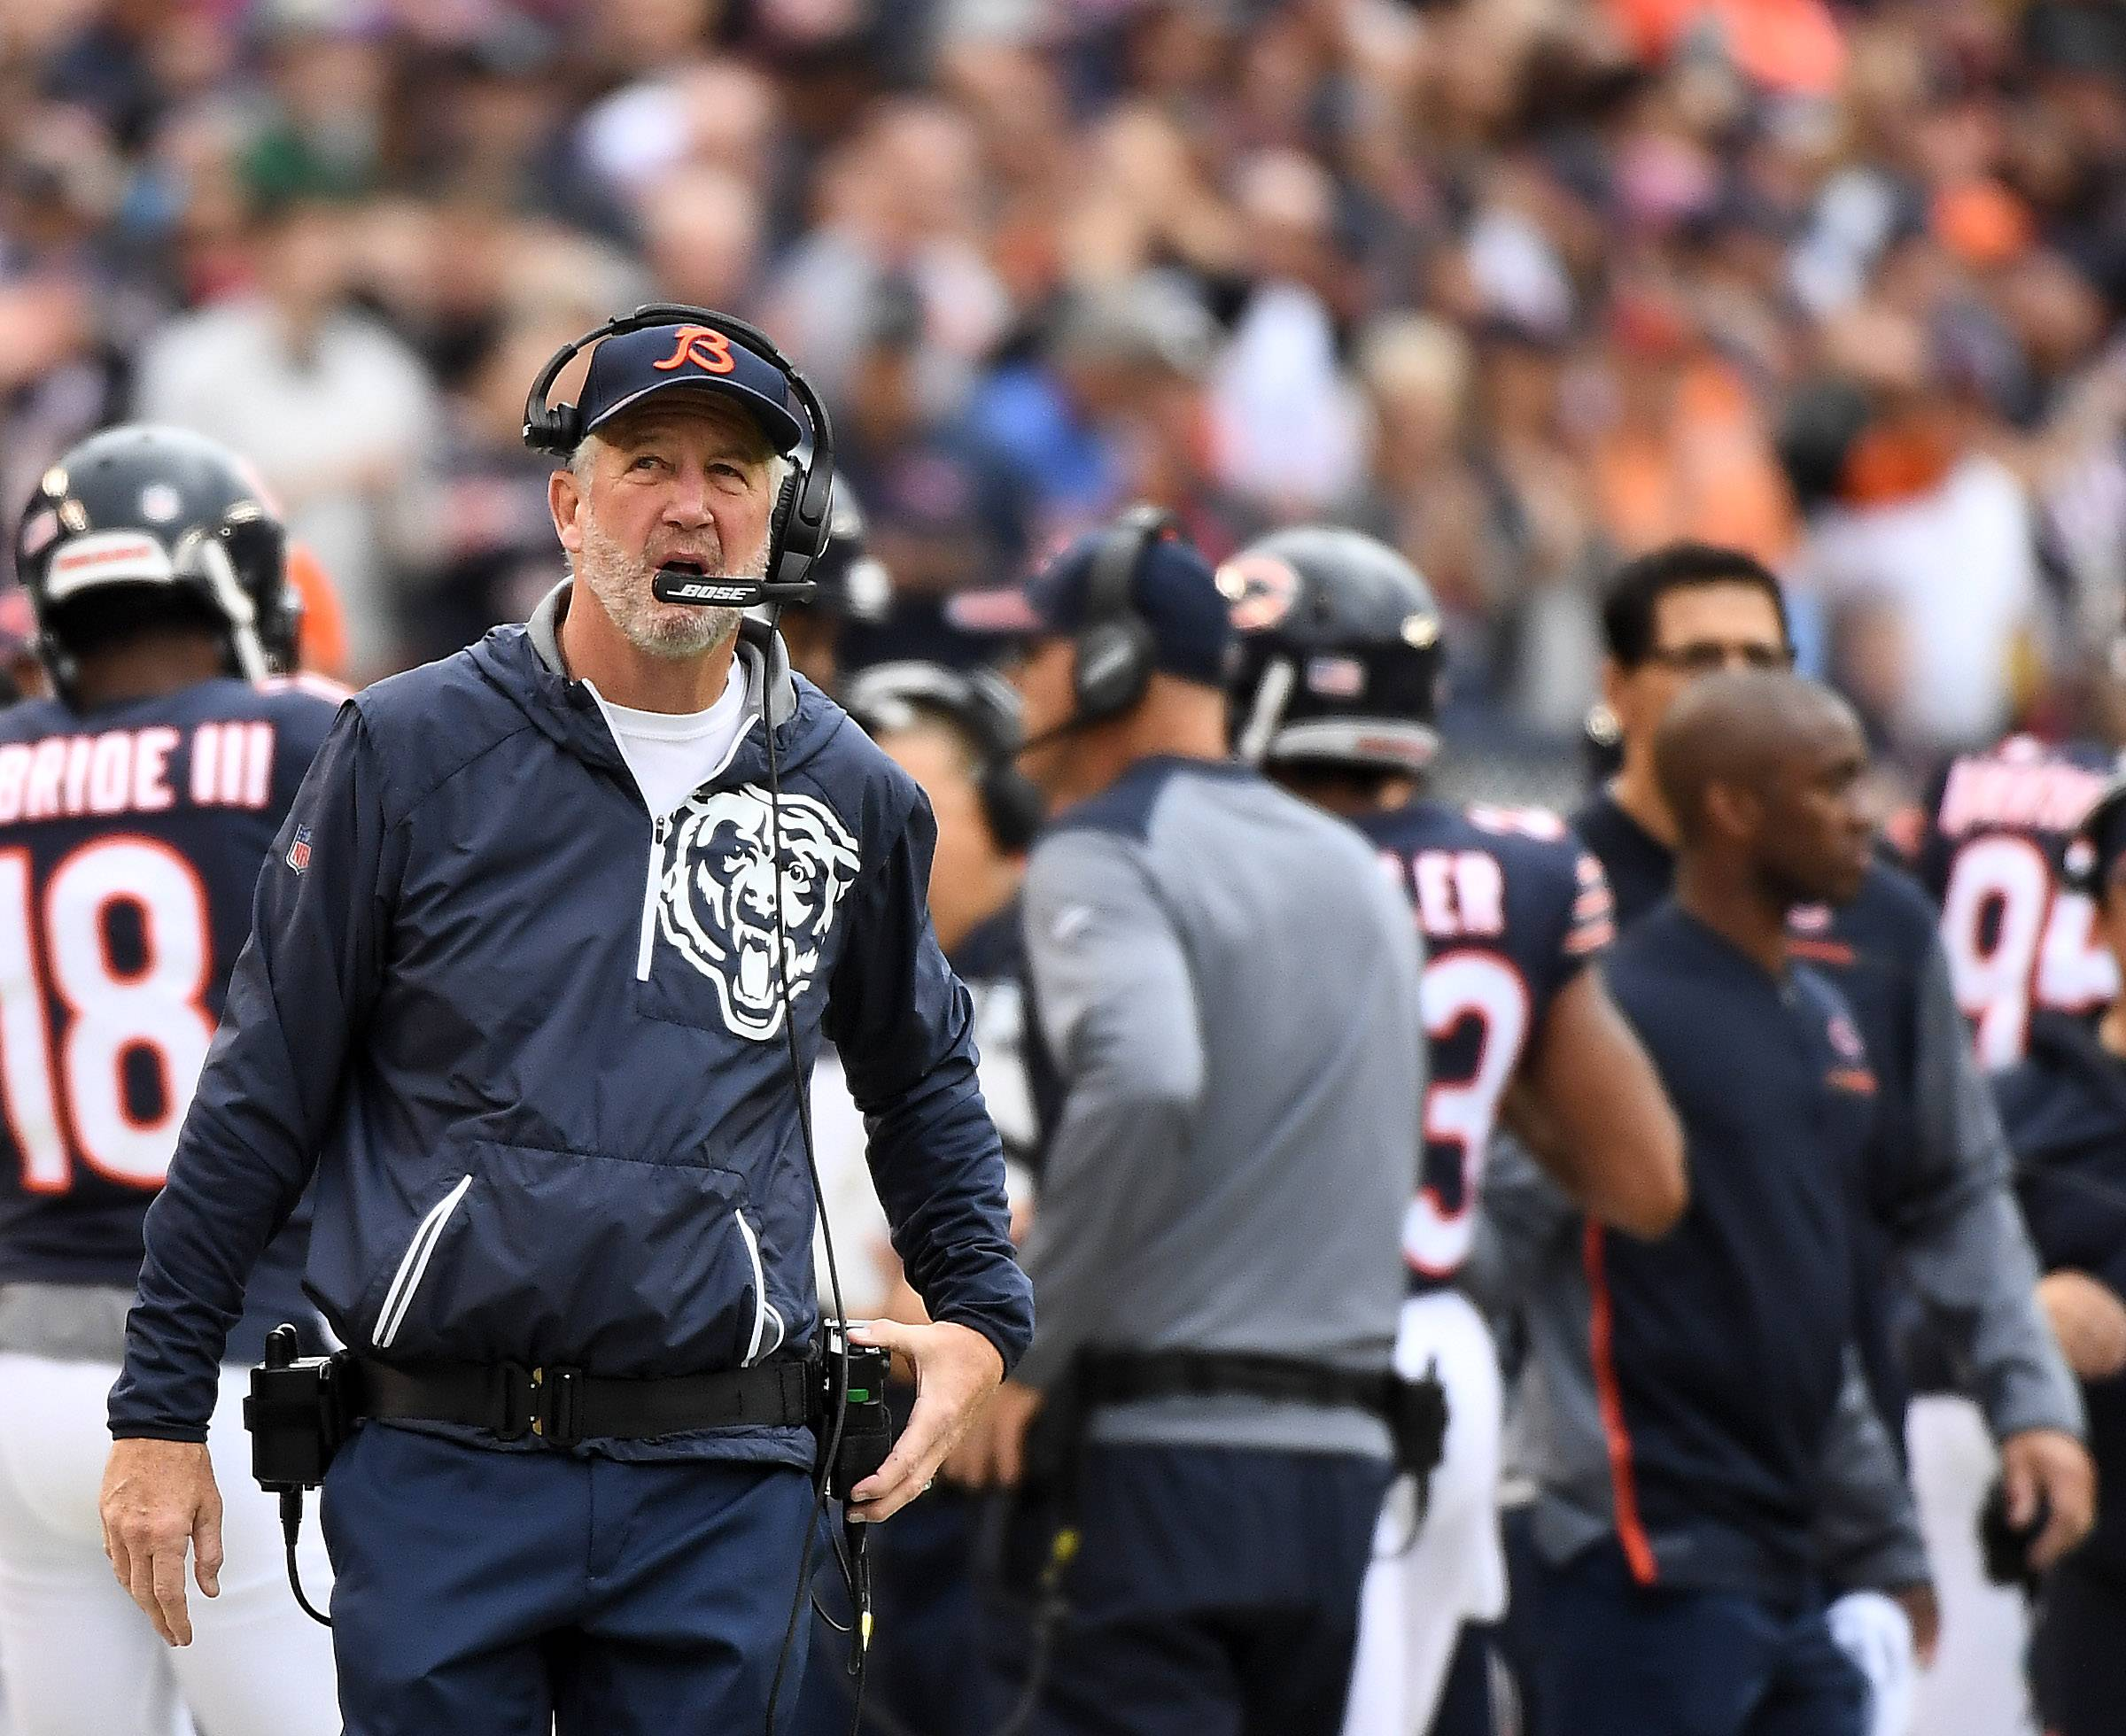 Coach John Fox was asked if playing most of the season with rookie quarterback Mitch Trubisky excuses his team's 4-10 record, but he declined to single anyone out for blame.